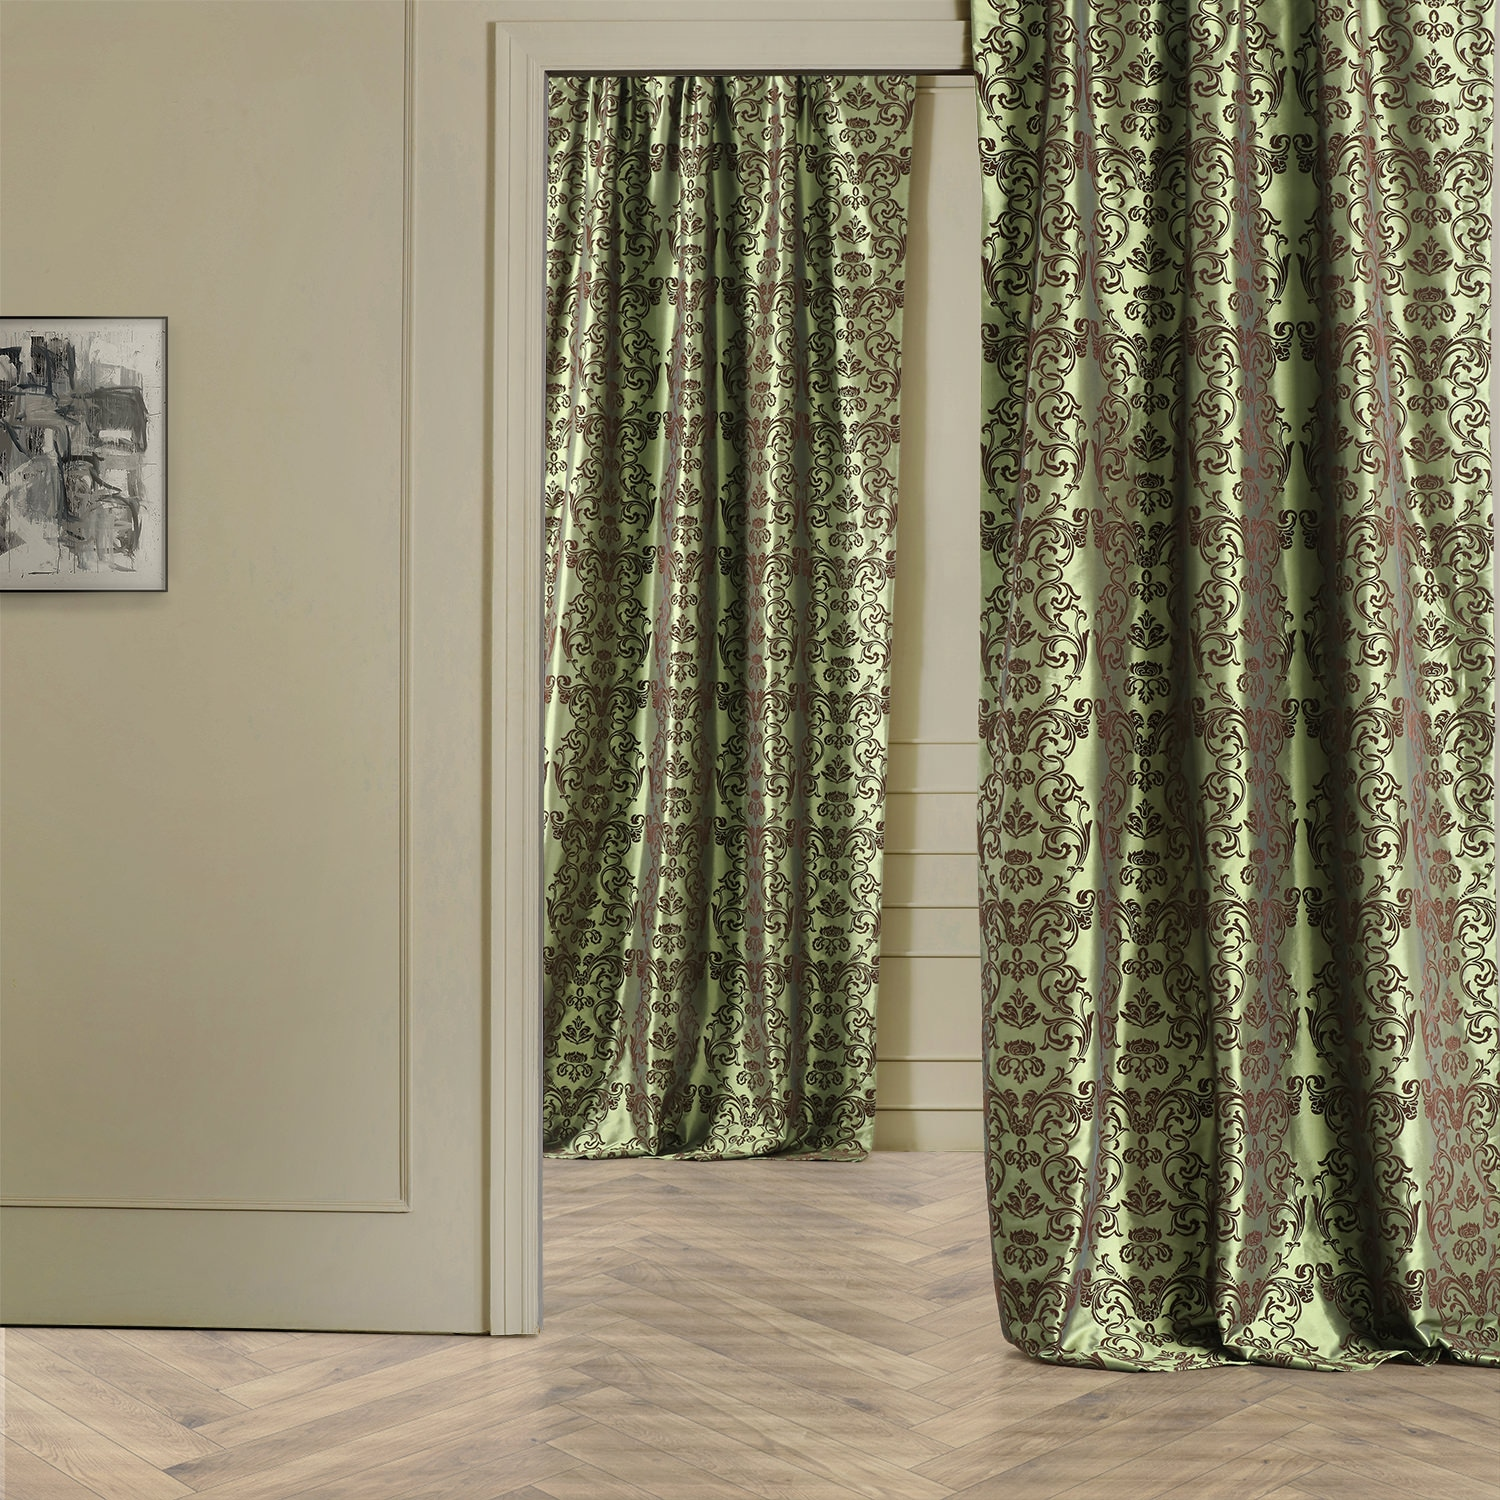 Faux Silk Curtains Firenze Fern Flocked Faux Silk Curtain